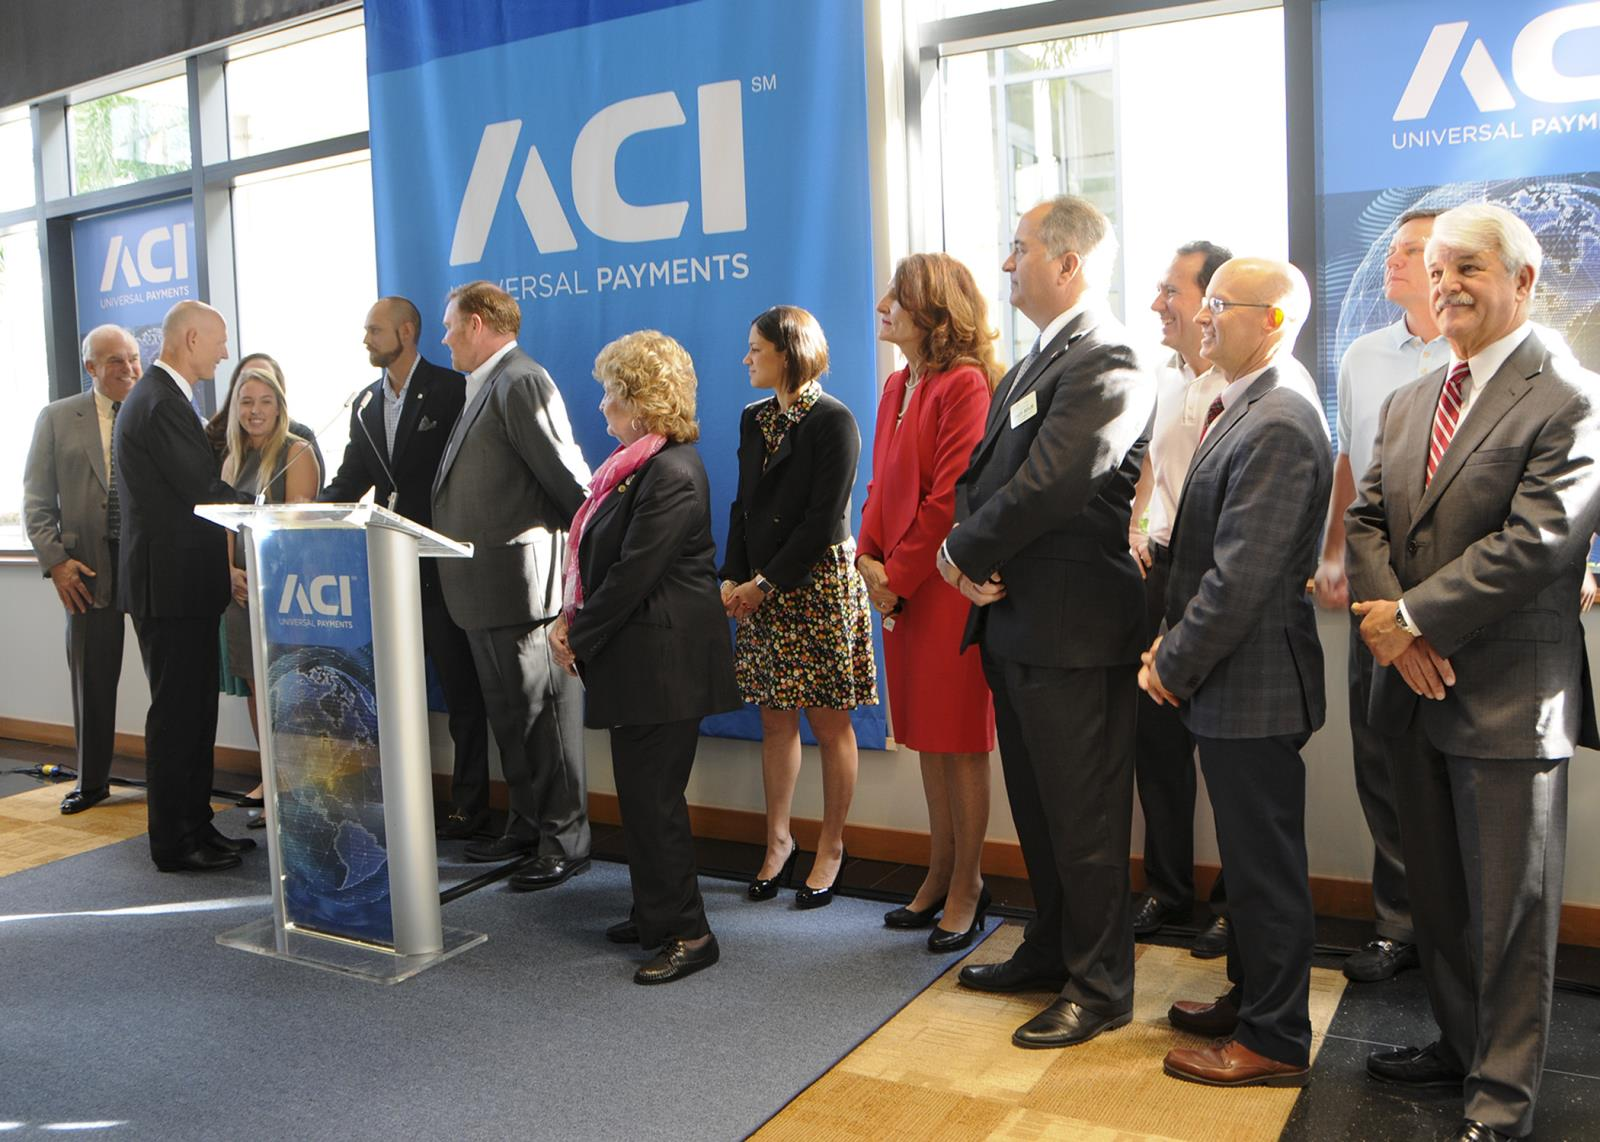 Governor Scott greeting people at ACI Universal Payments ceremony